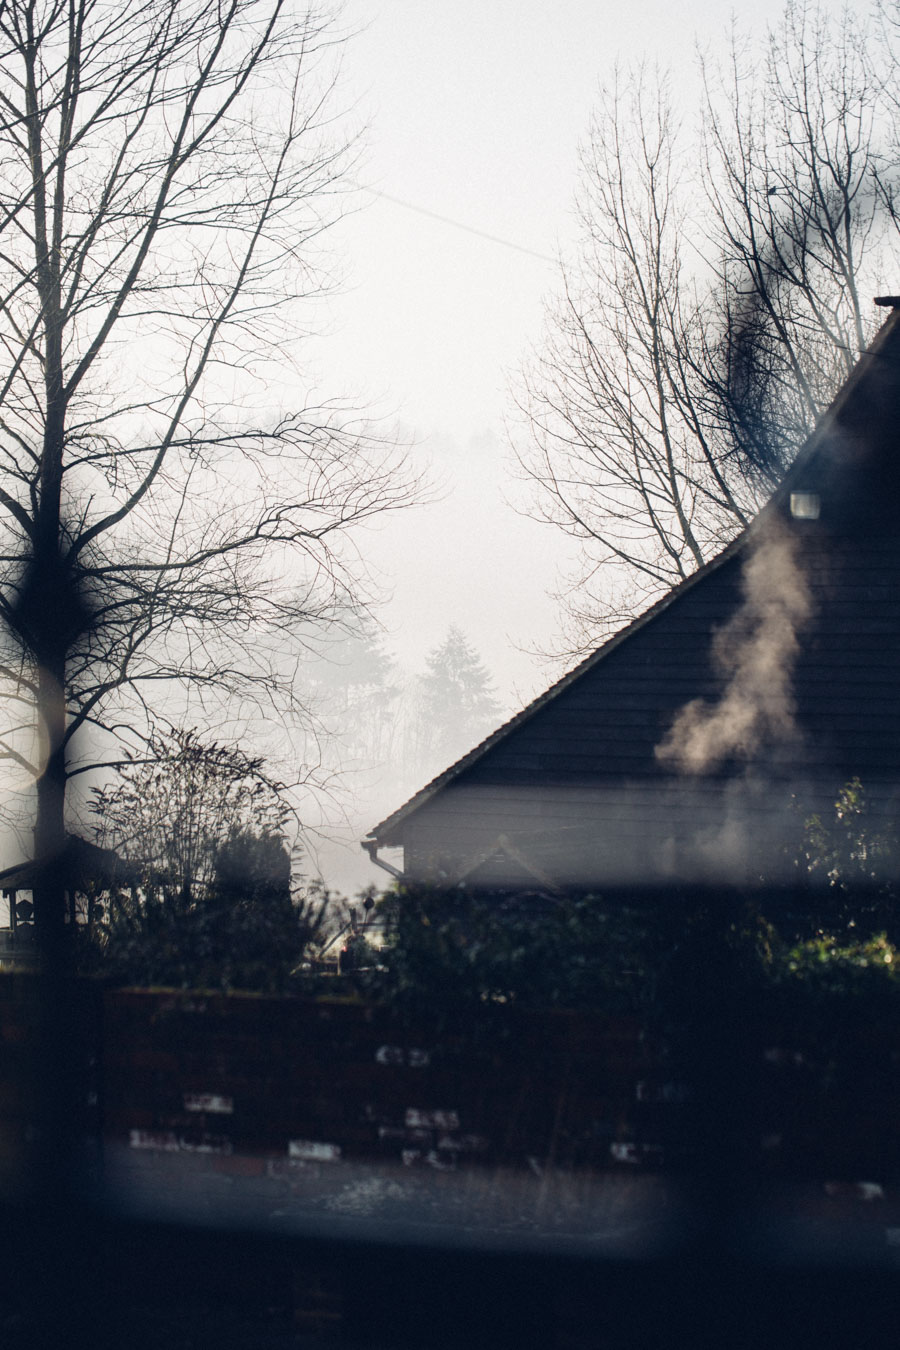 fog and smoke scenes